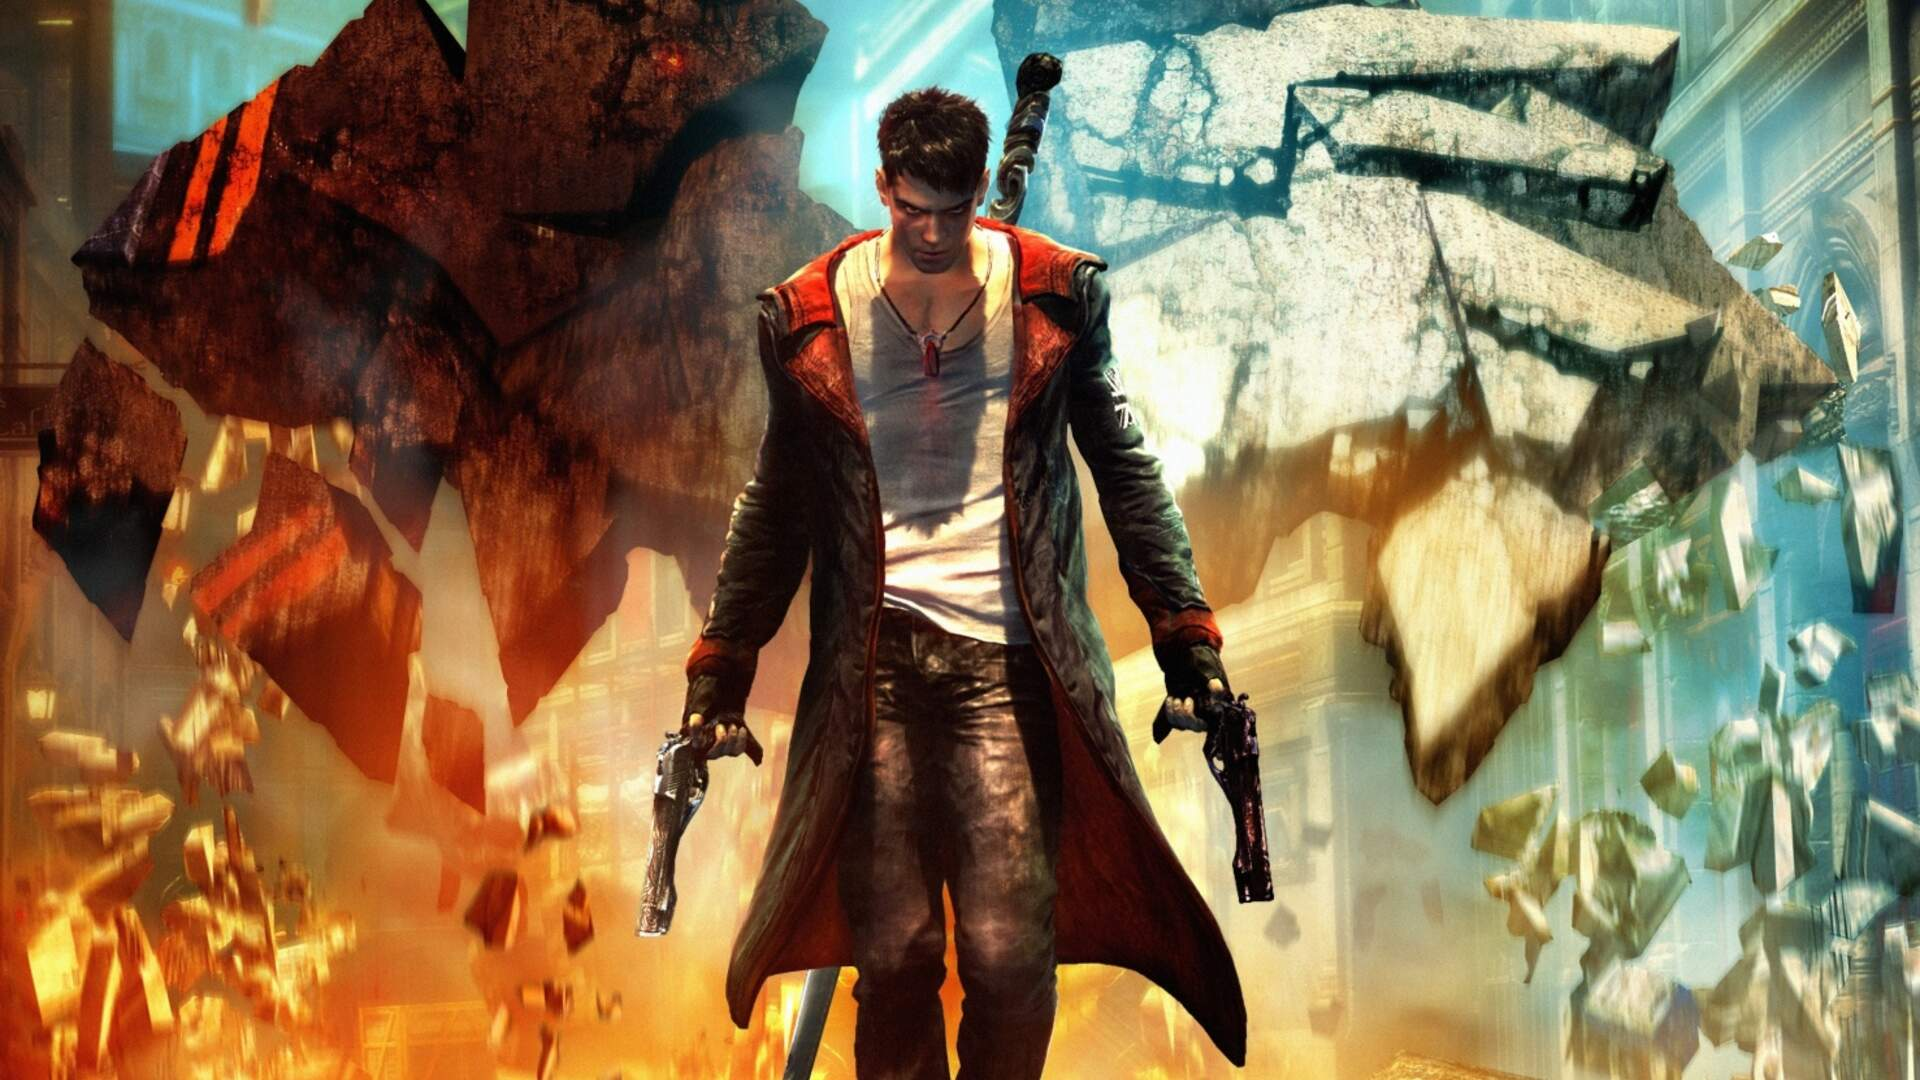 Devil May Cry 5 Director Would Love a DmC 2, but Only if Ninja Theory Makes It